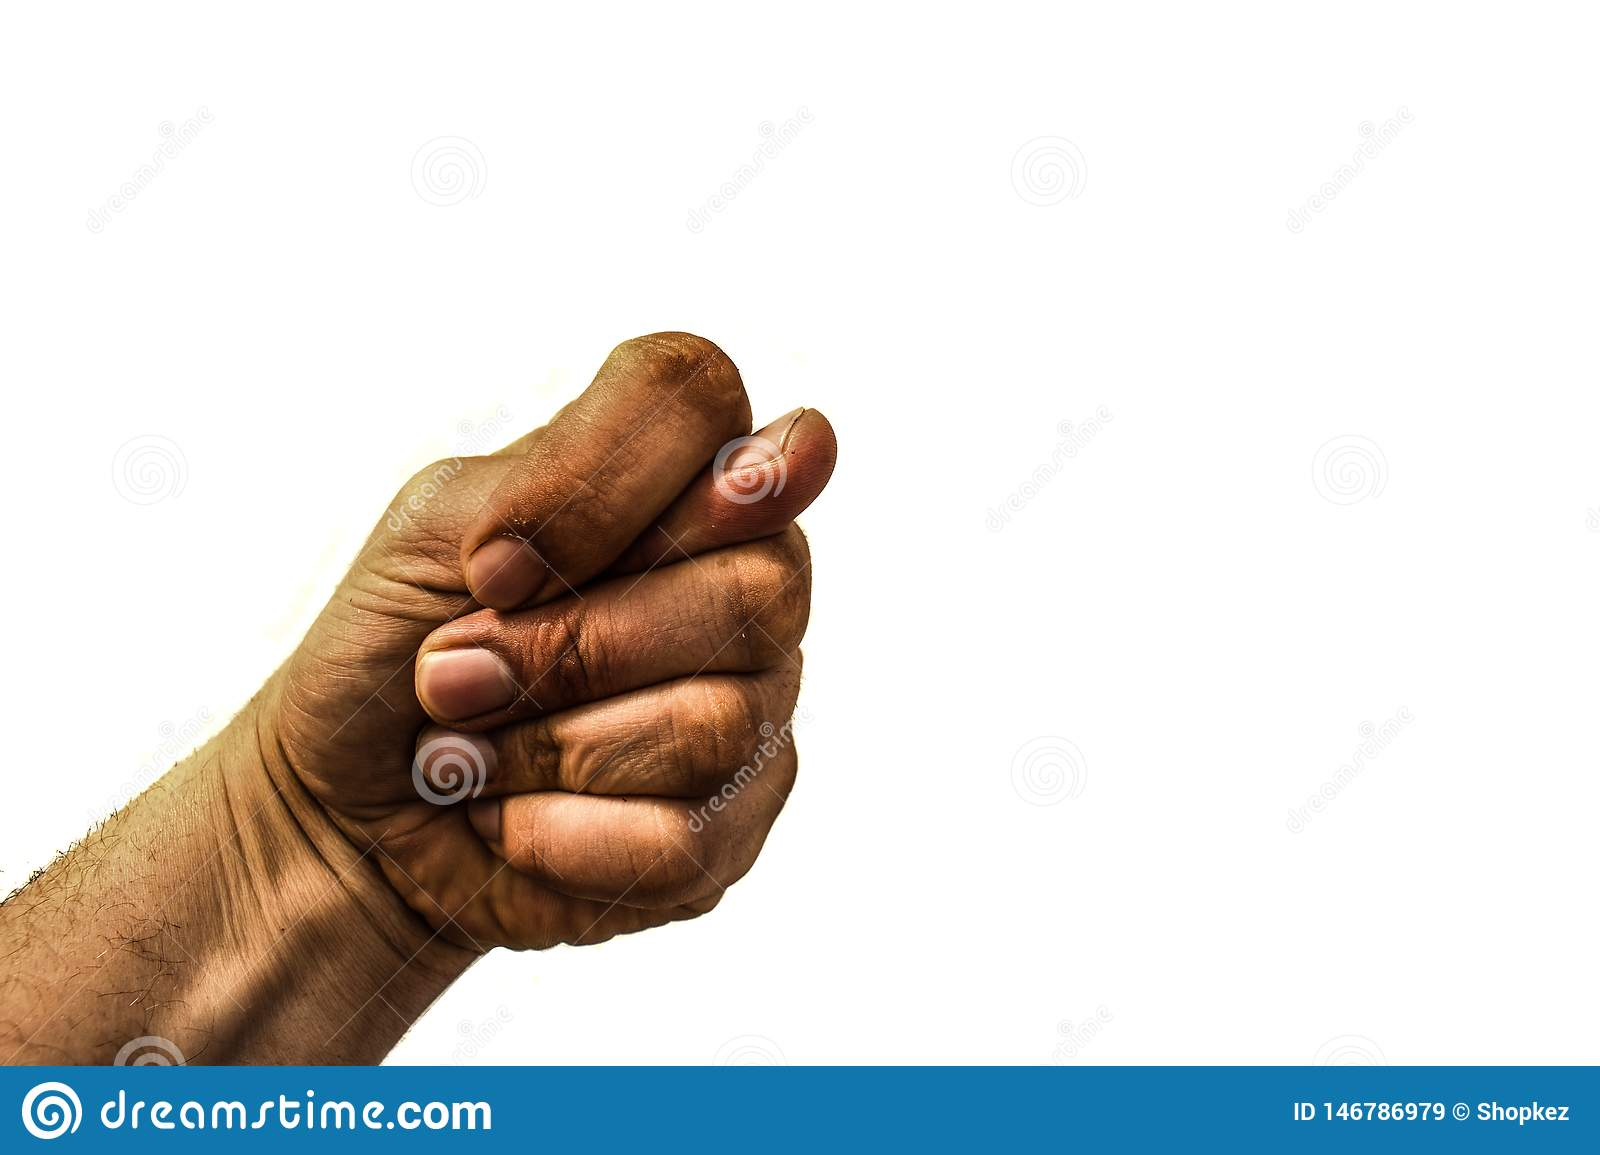 Dirty hand showing a fig sign isolated on white background